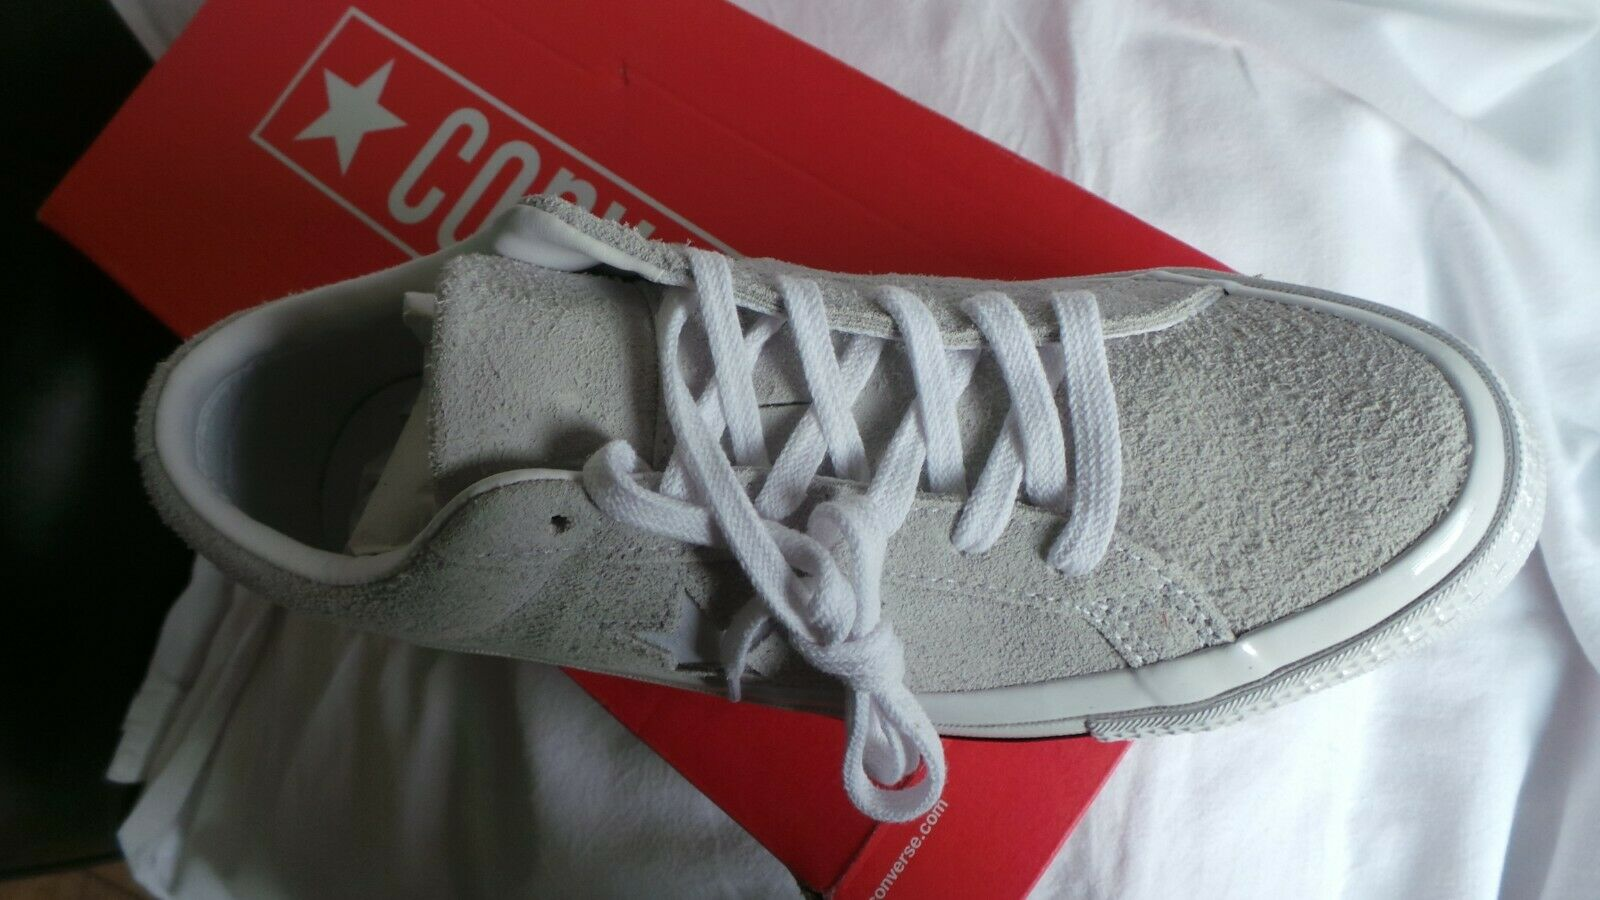 BRAND BRAND BRAND NEW in box Converse CTAS Grey leather One Star Ox trainers UK 8 EU 41.5 58e669